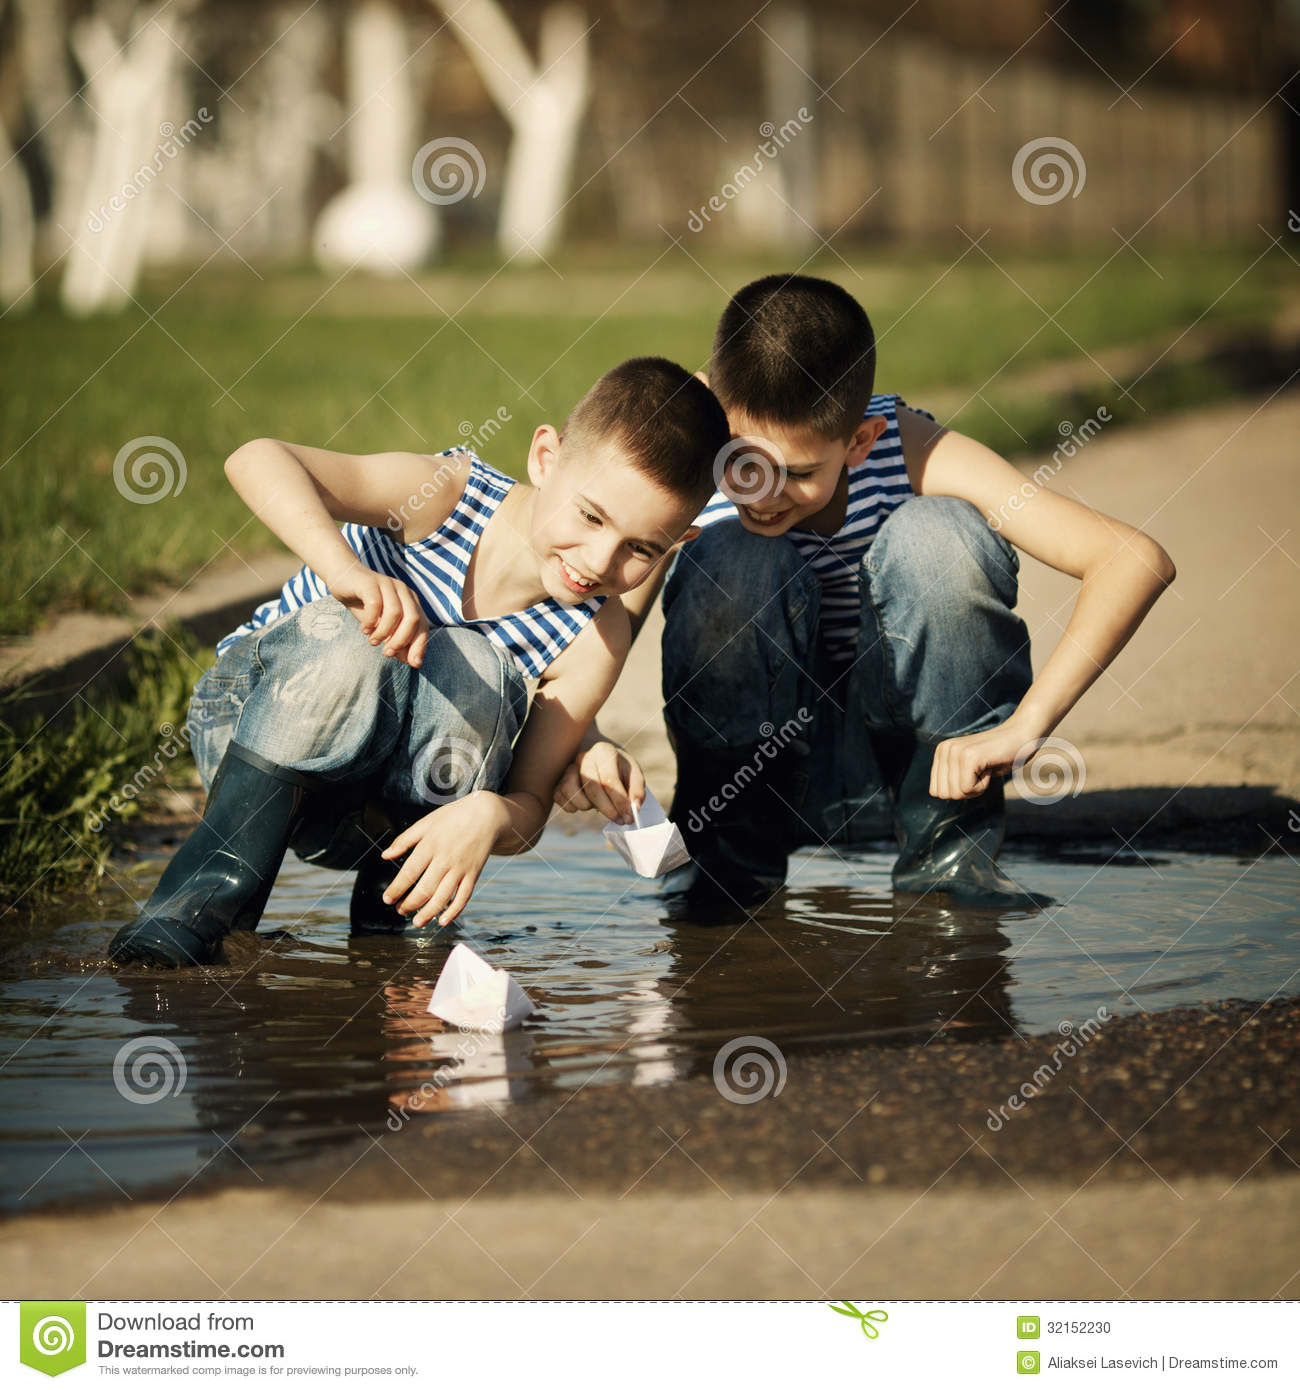 Lillle Boy Toys Boats : Little boy plays with paper boats in puddle stock photo